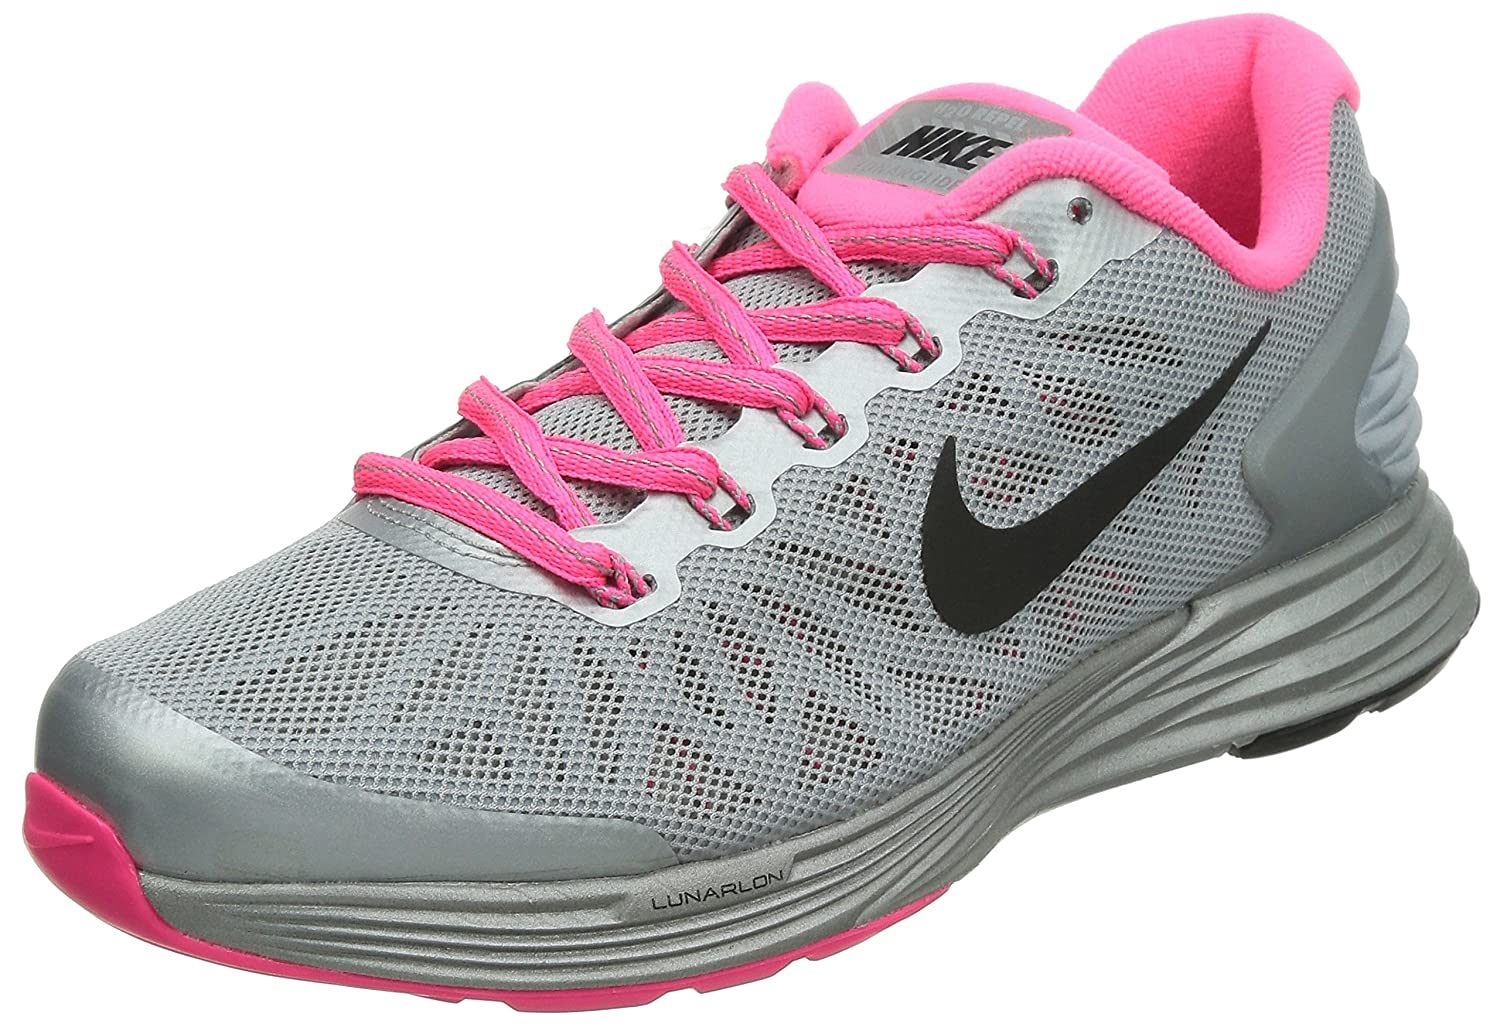 new style 0aa4a 031c3 NIKE Lunarglide 6 Flash (Gs) Running Gradeschool Girl's Shoes